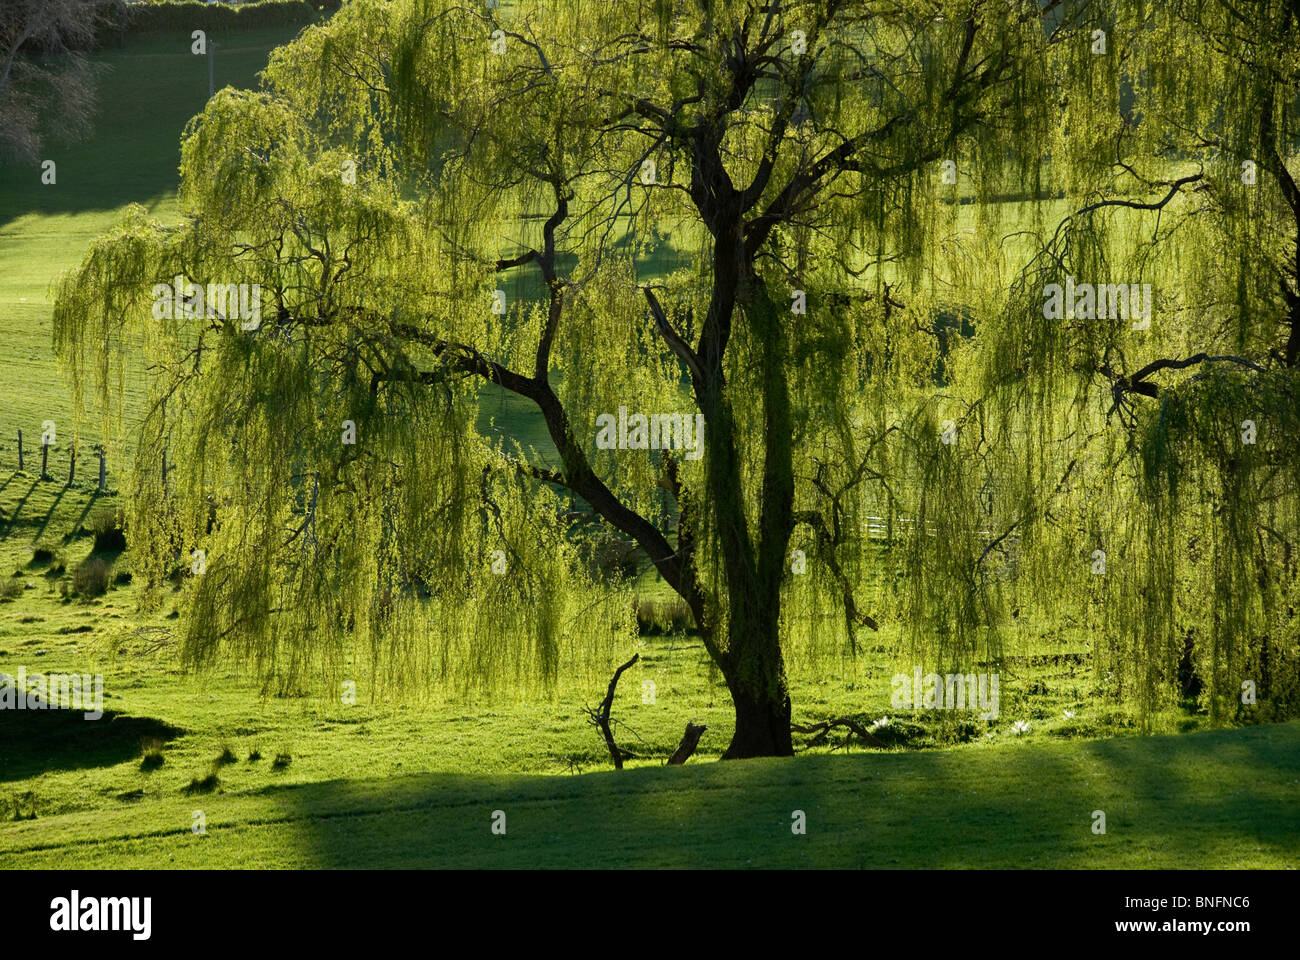 weeping willow tree stock photos  weeping willow tree stock, Natural flower